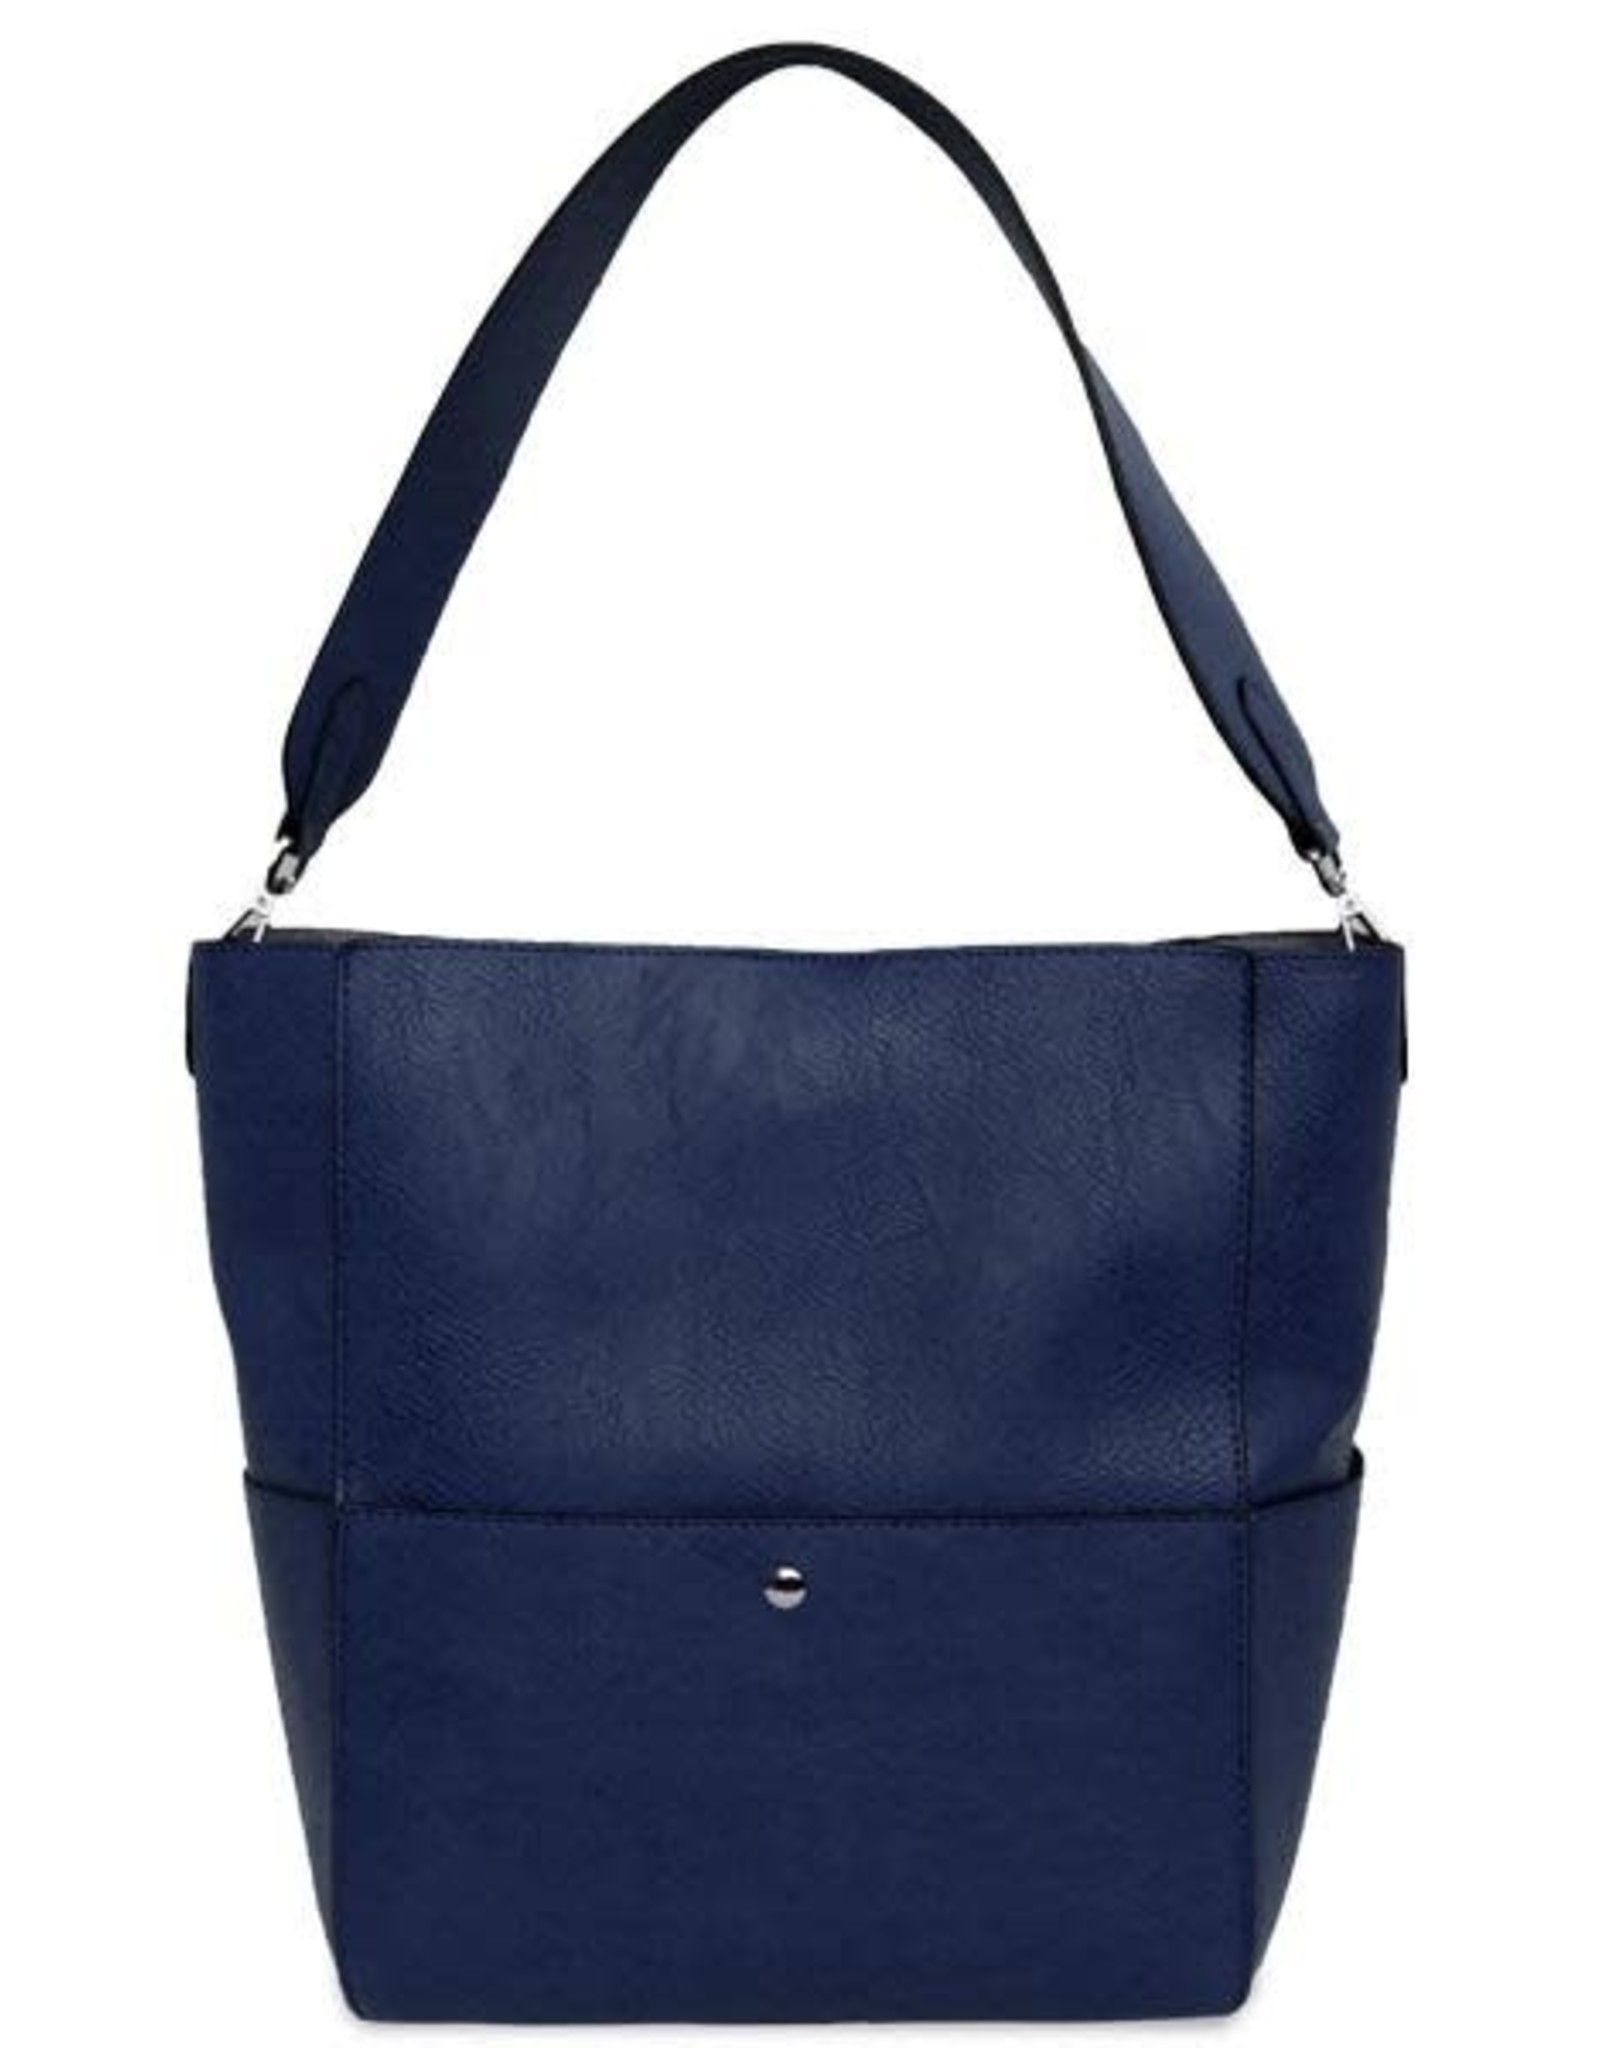 Navy Square Tote w/Extra Bohemian Guitar Strap